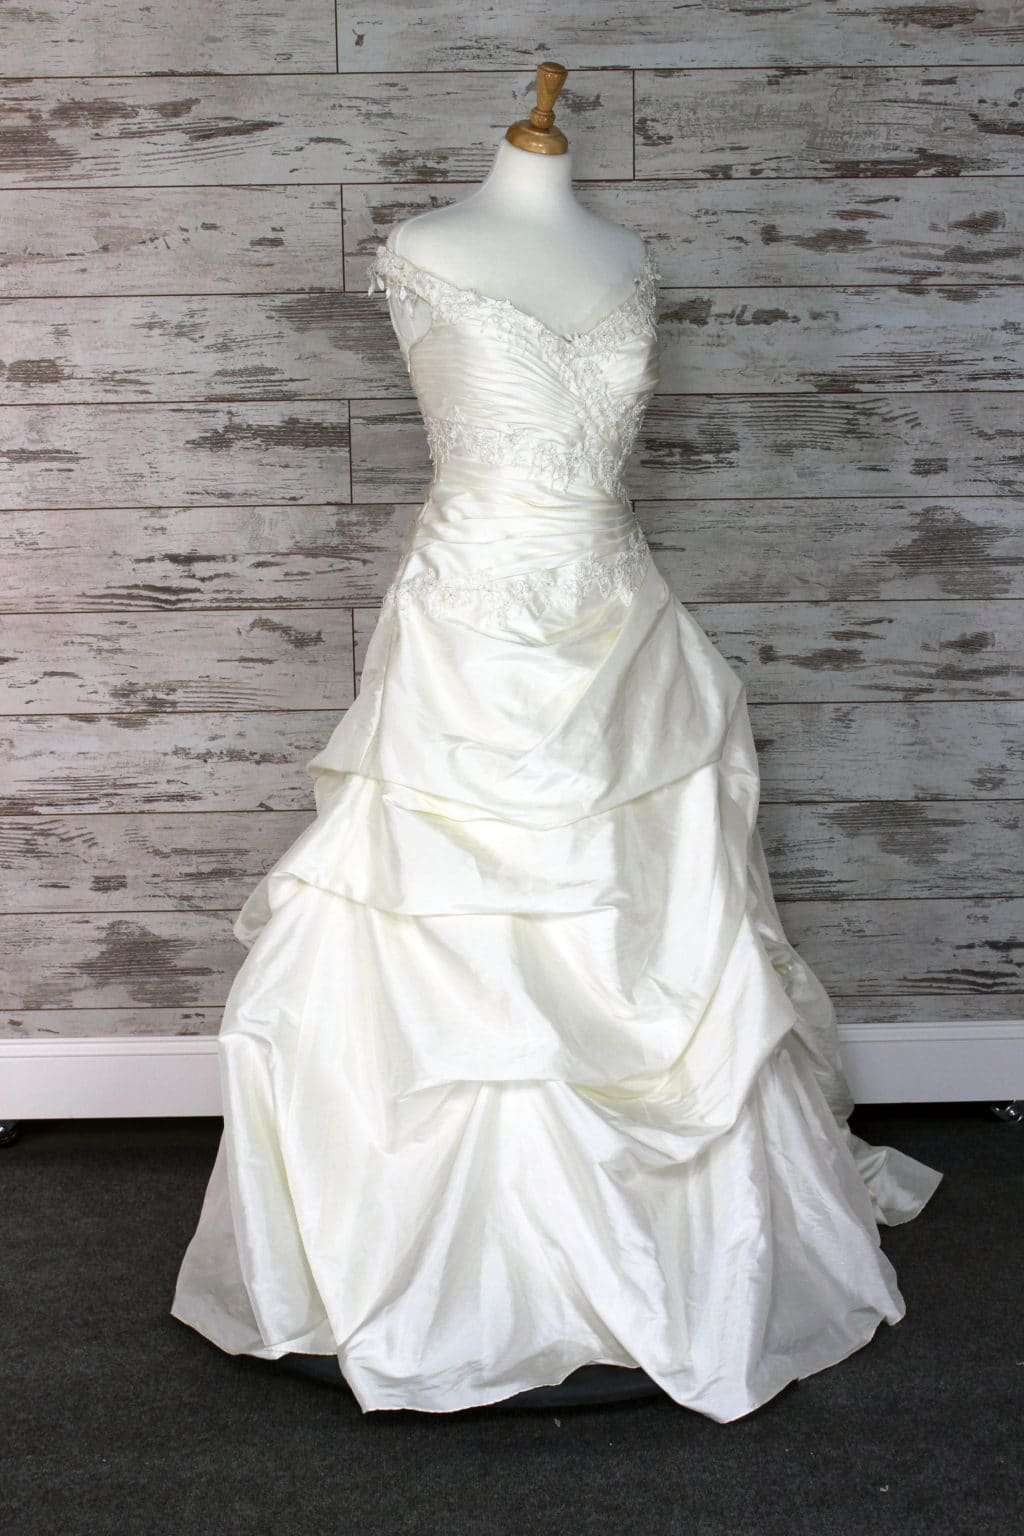 Buy a designer wedding dress at huge discount up to 80 off retail aire barcelona ball gown wedding dress ivory ombrellifo Image collections